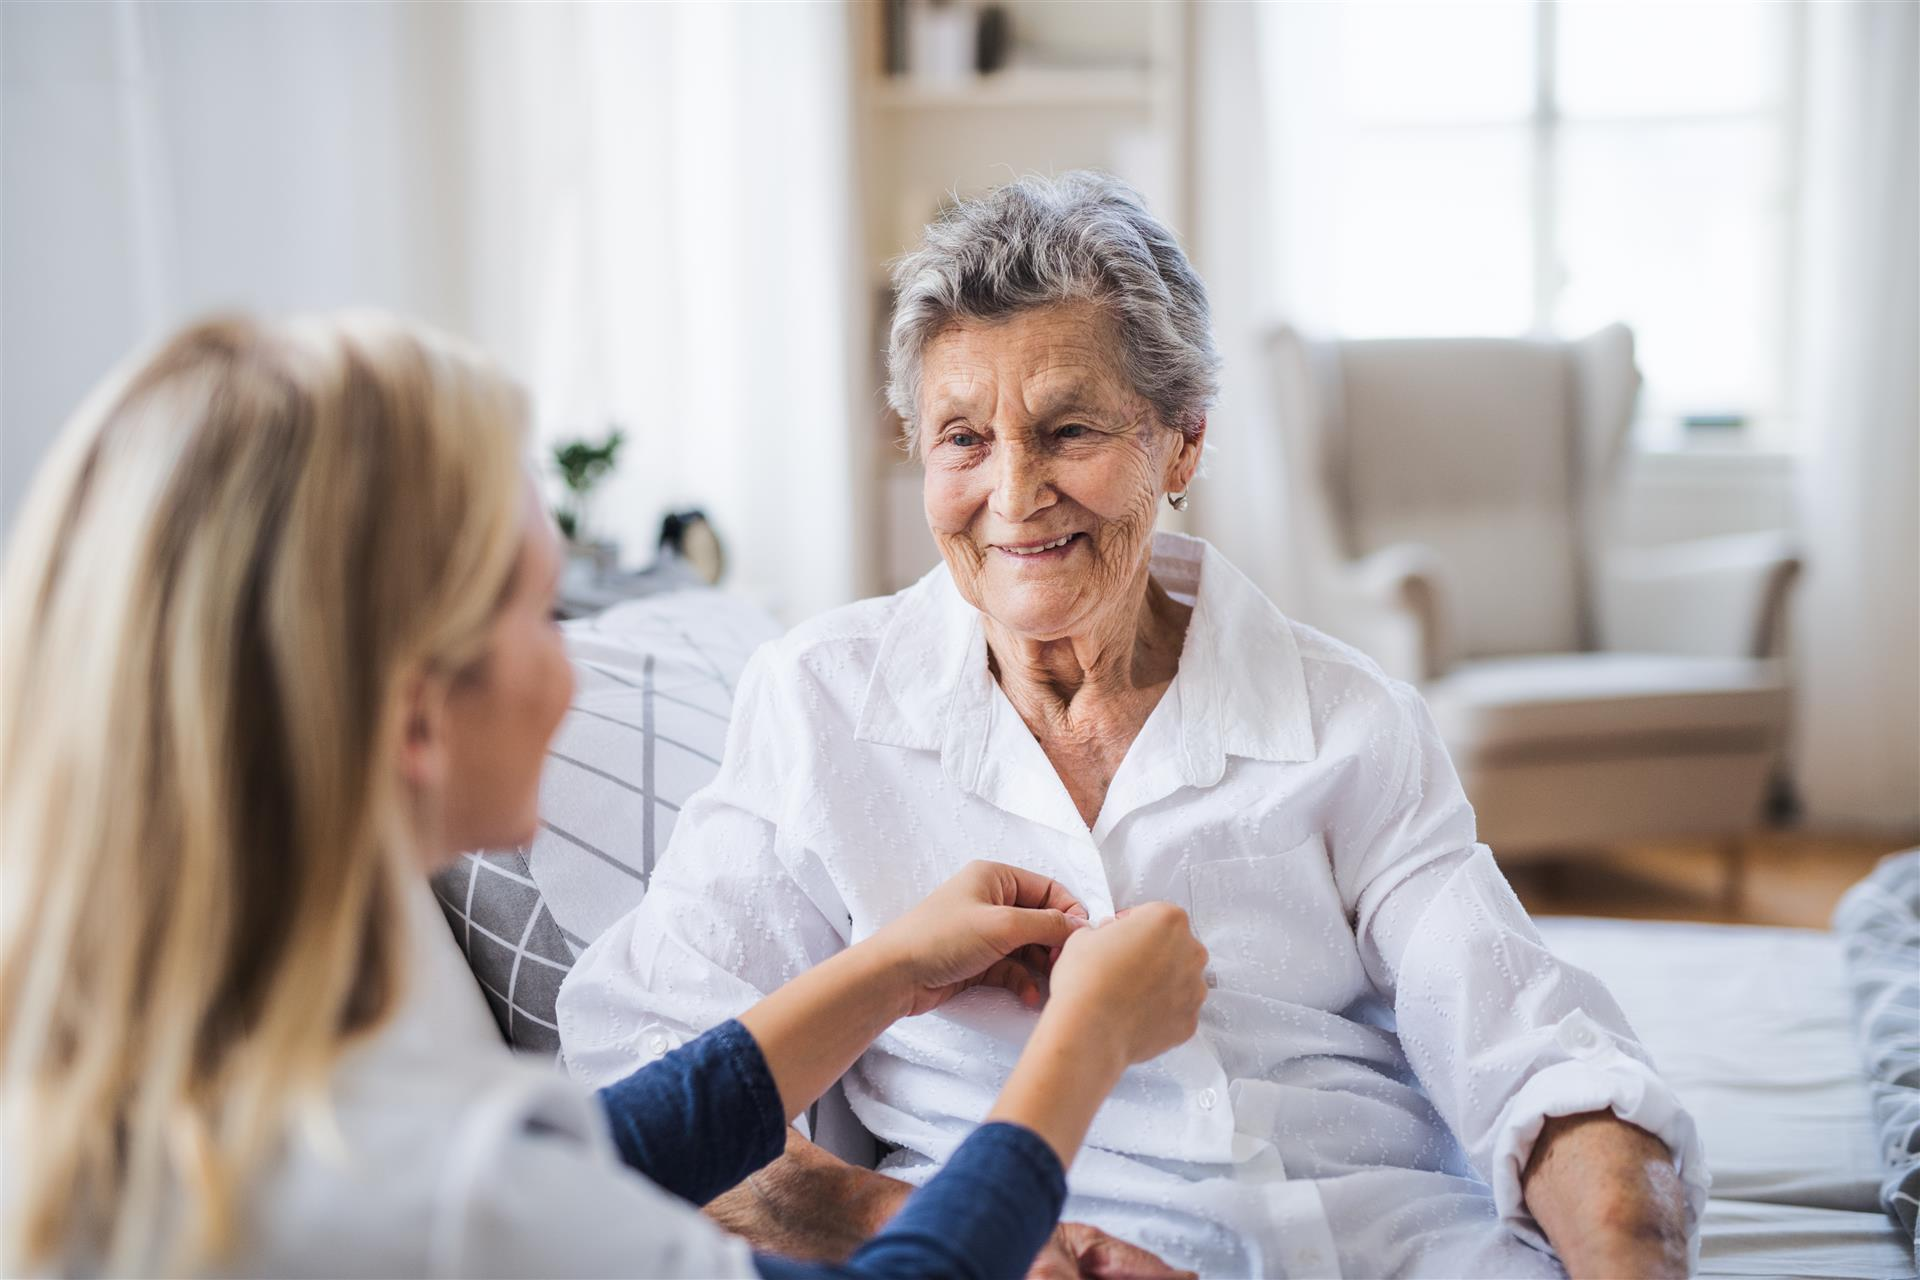 Did You Know Senior Bodies Have Unique Nutritional Needs?